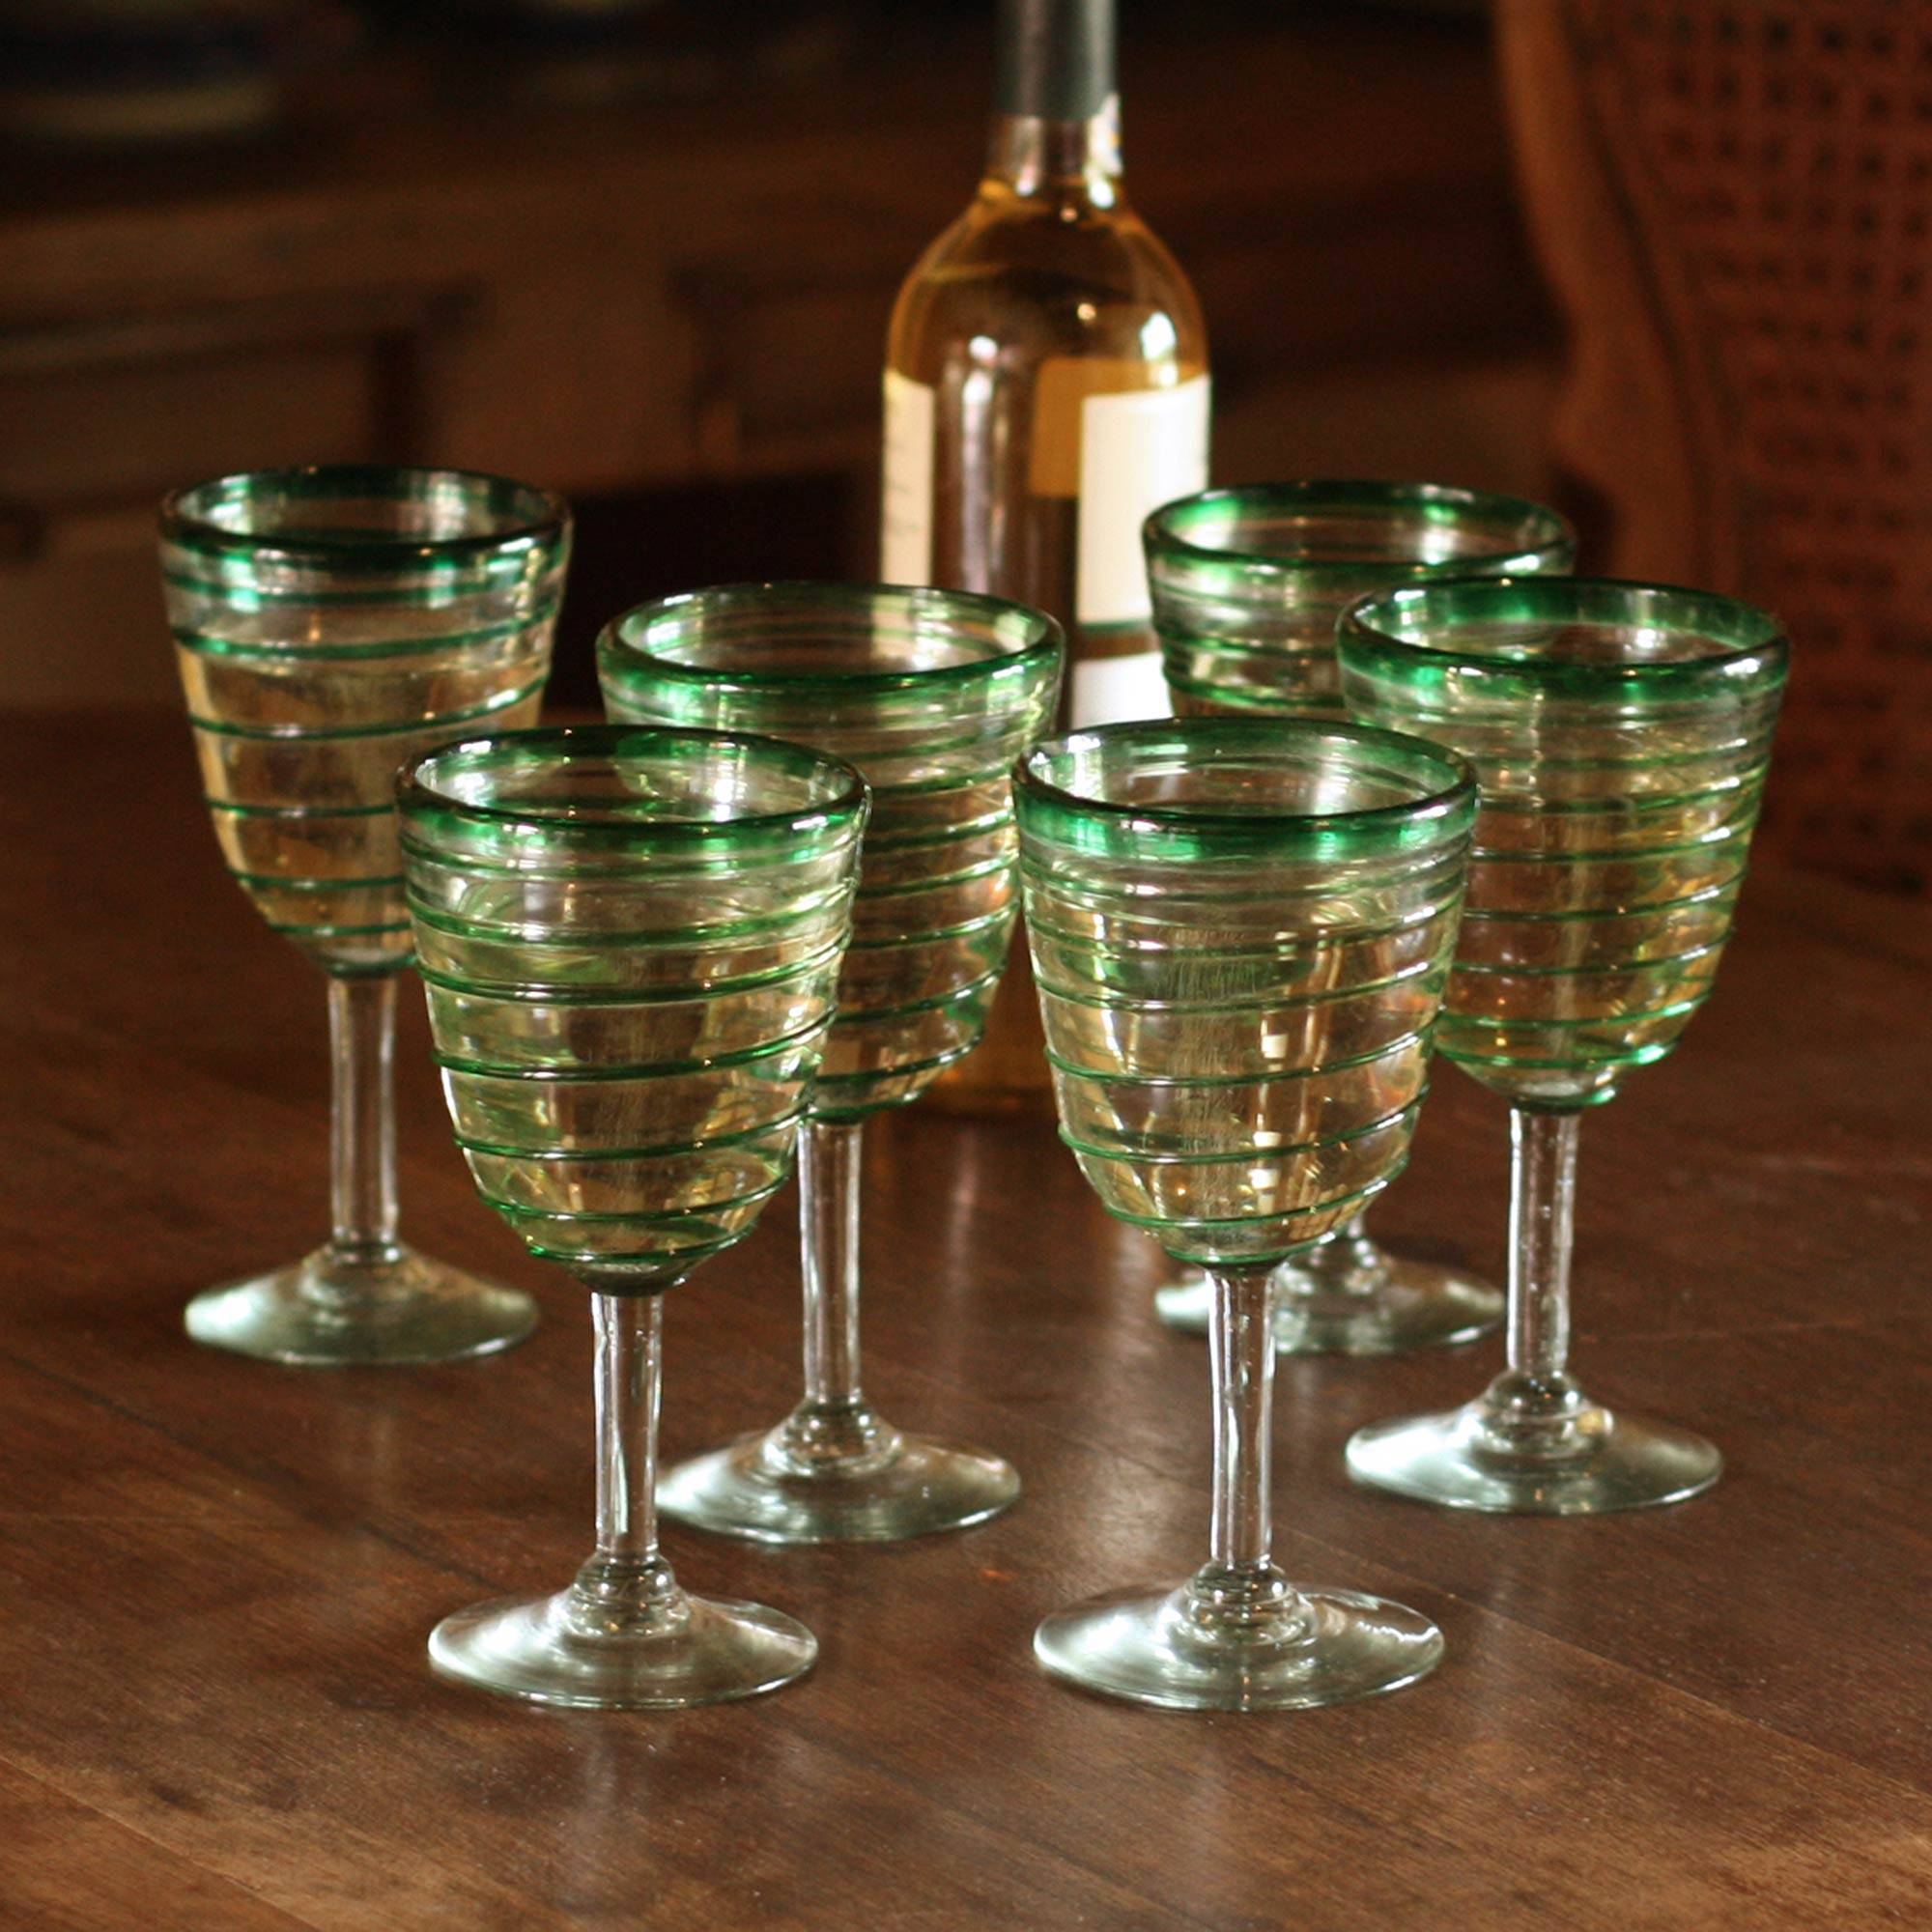 Goblets, 'Green Spiral' (set of 6) - simple, yet pretty wine glasses.